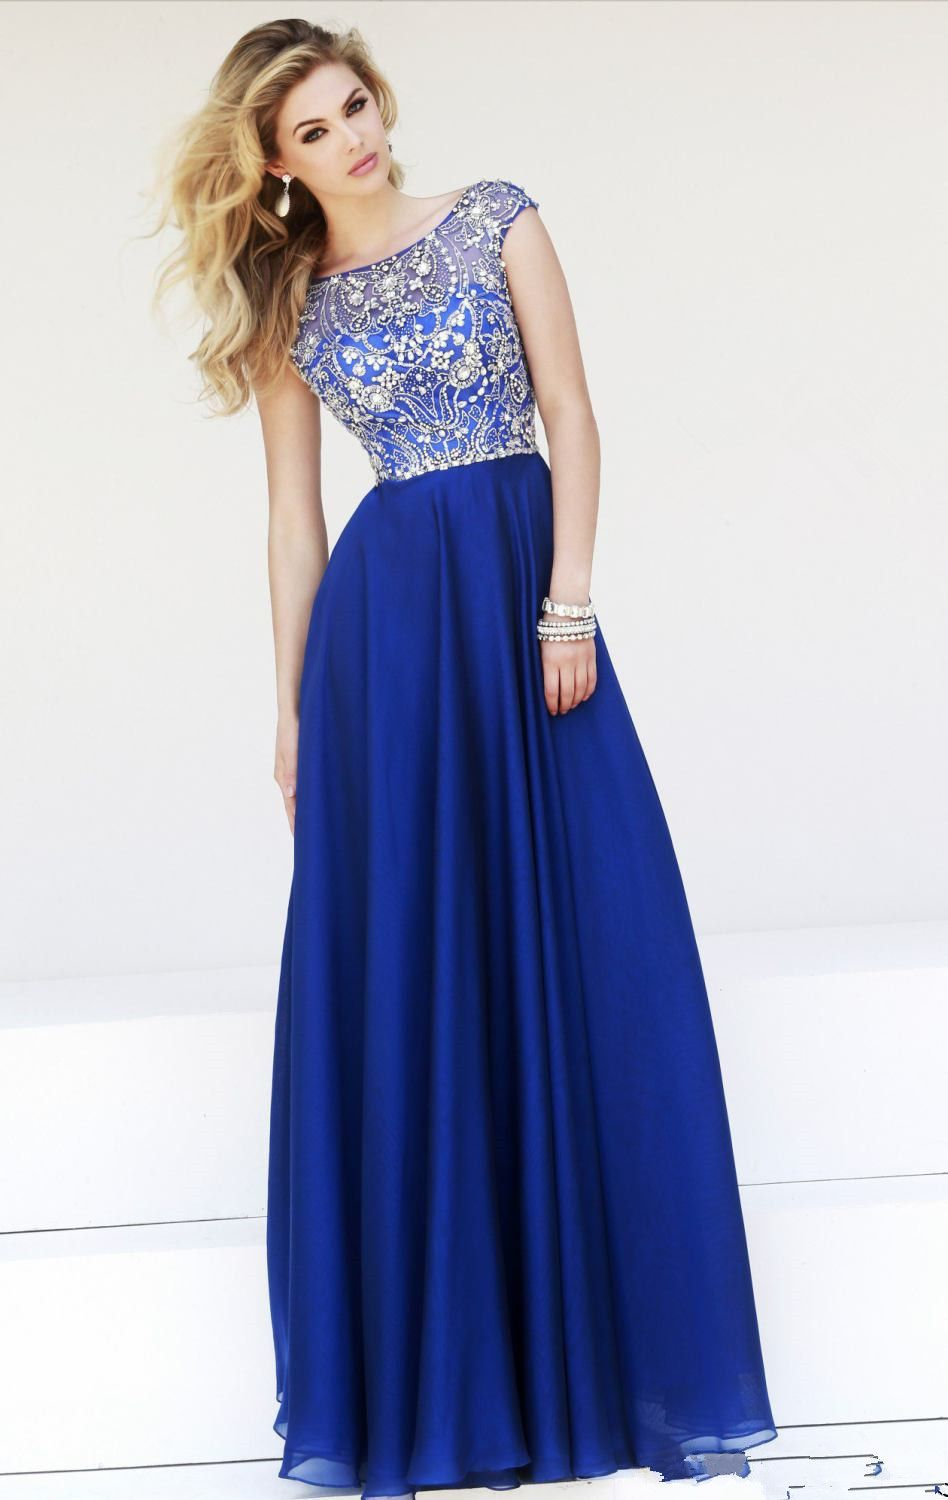 Exquisite aline jewel floorlength bridesmaidpromhomecoming dress